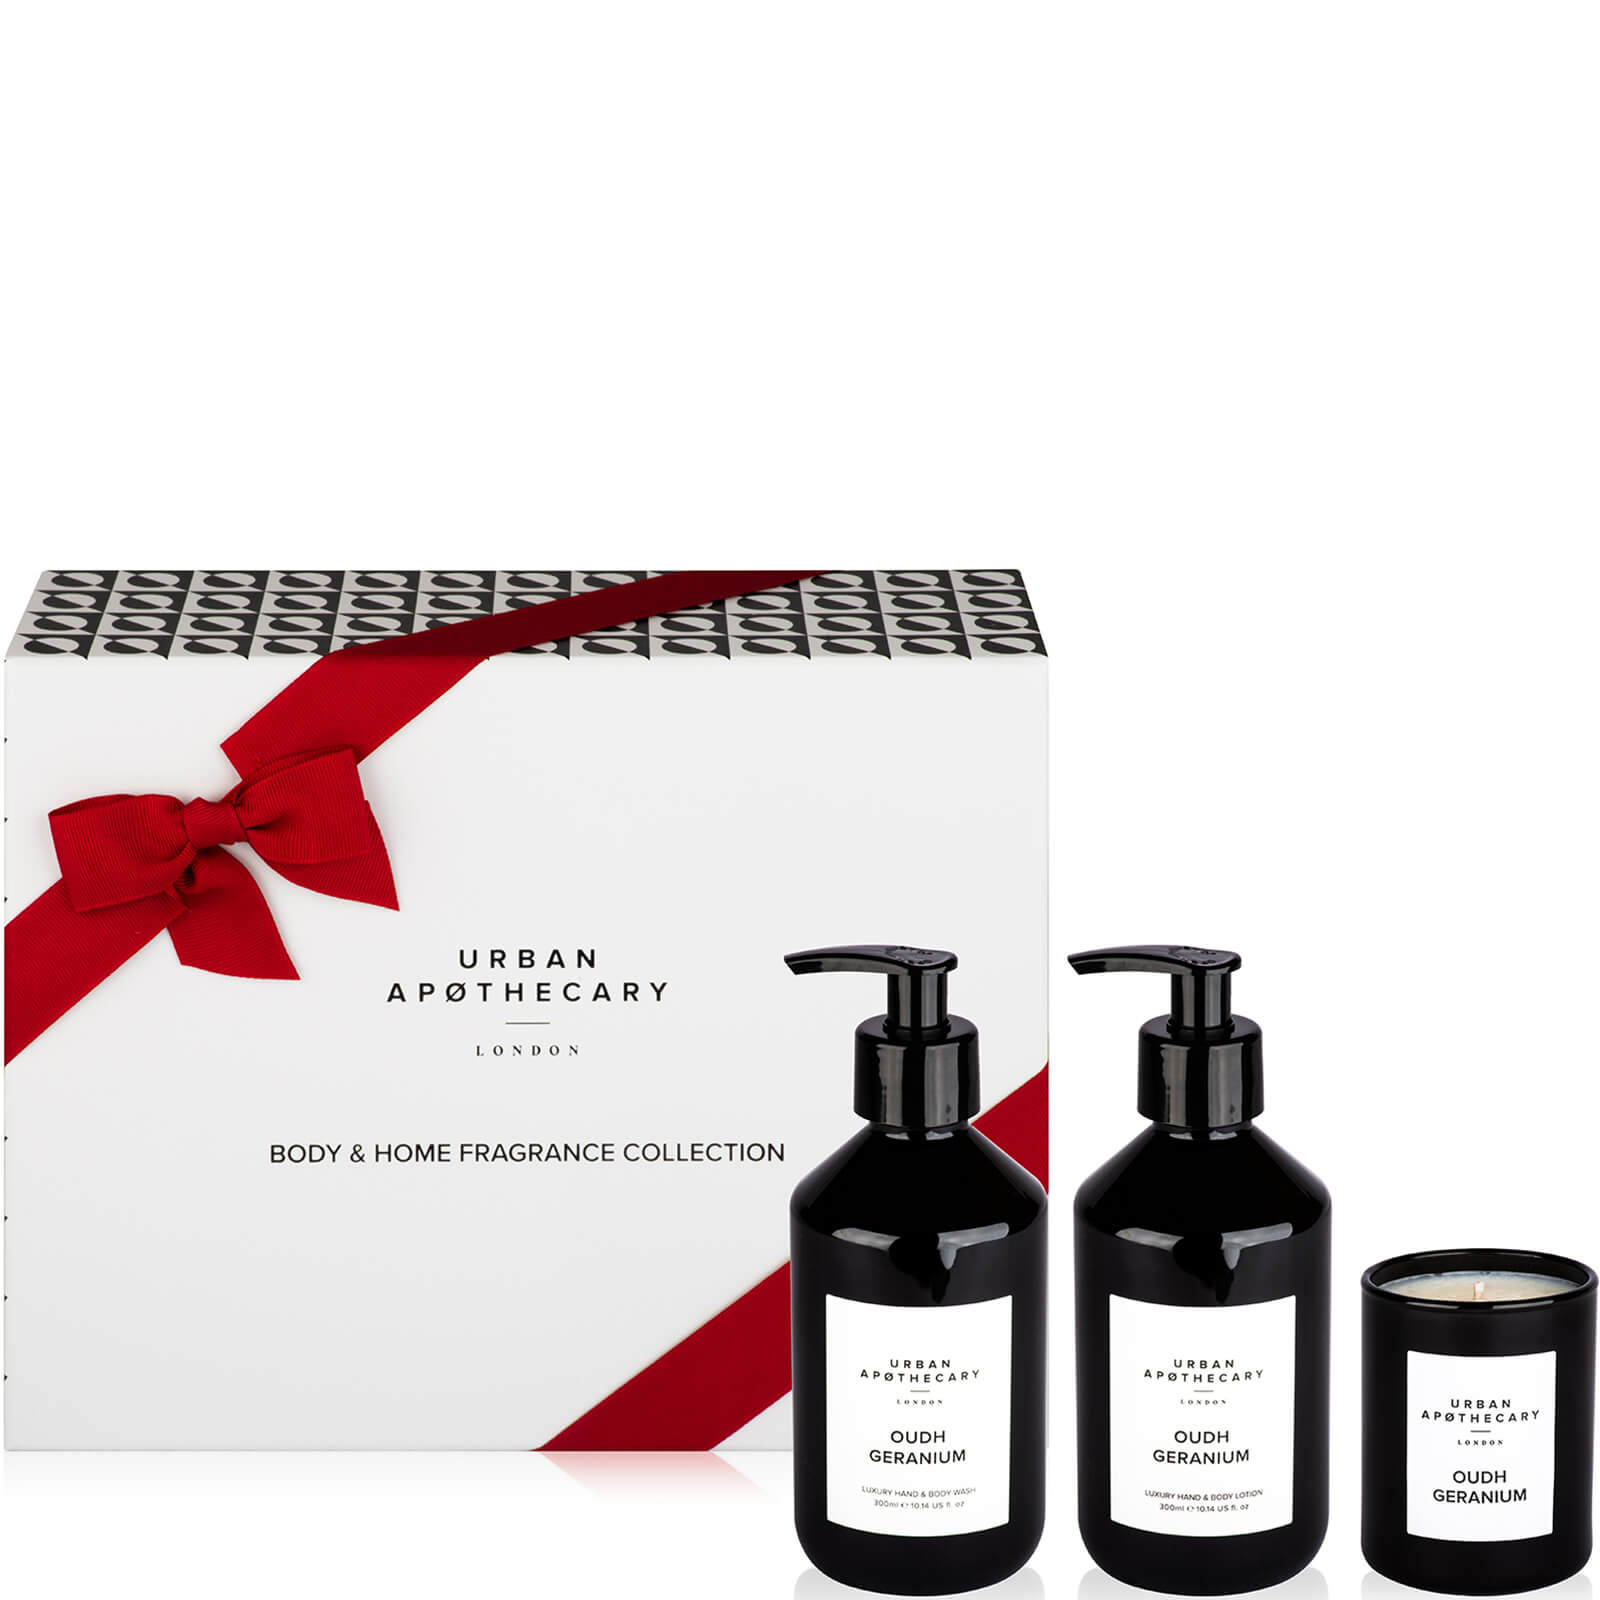 Купить Urban Apothecary Oudh Geranium Body + Home Collection - 300ml Wash, Lotion and 70g Candle